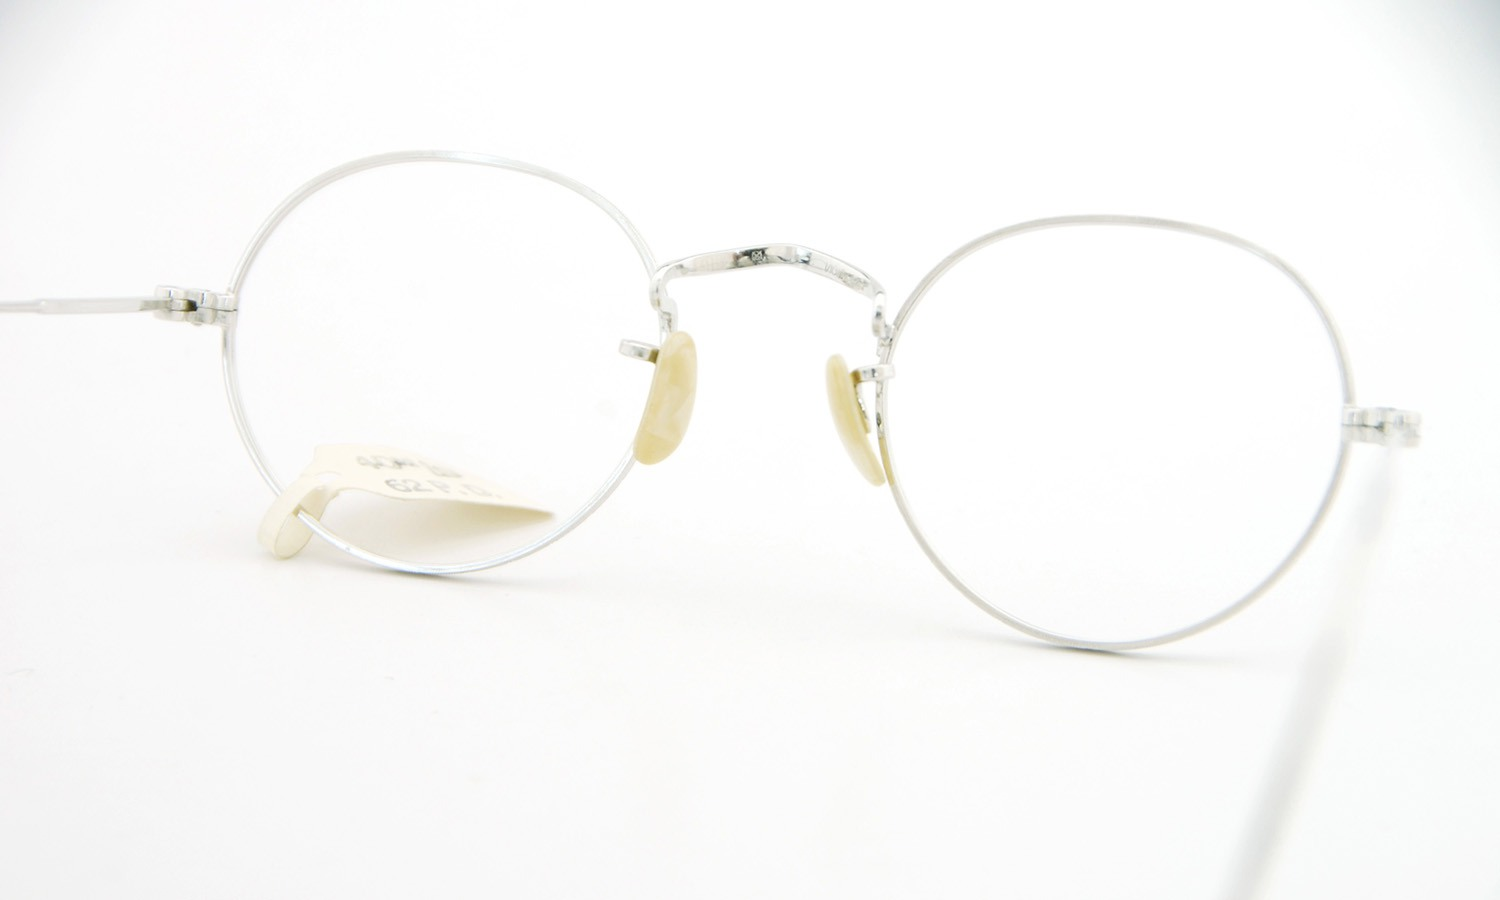 American vintage アメリカン ヴィンテージ メガネ 1930年代 PANTO 1/10 12kGF MASHWOOD CENTER-POINT col.White-Gold 42-20 7